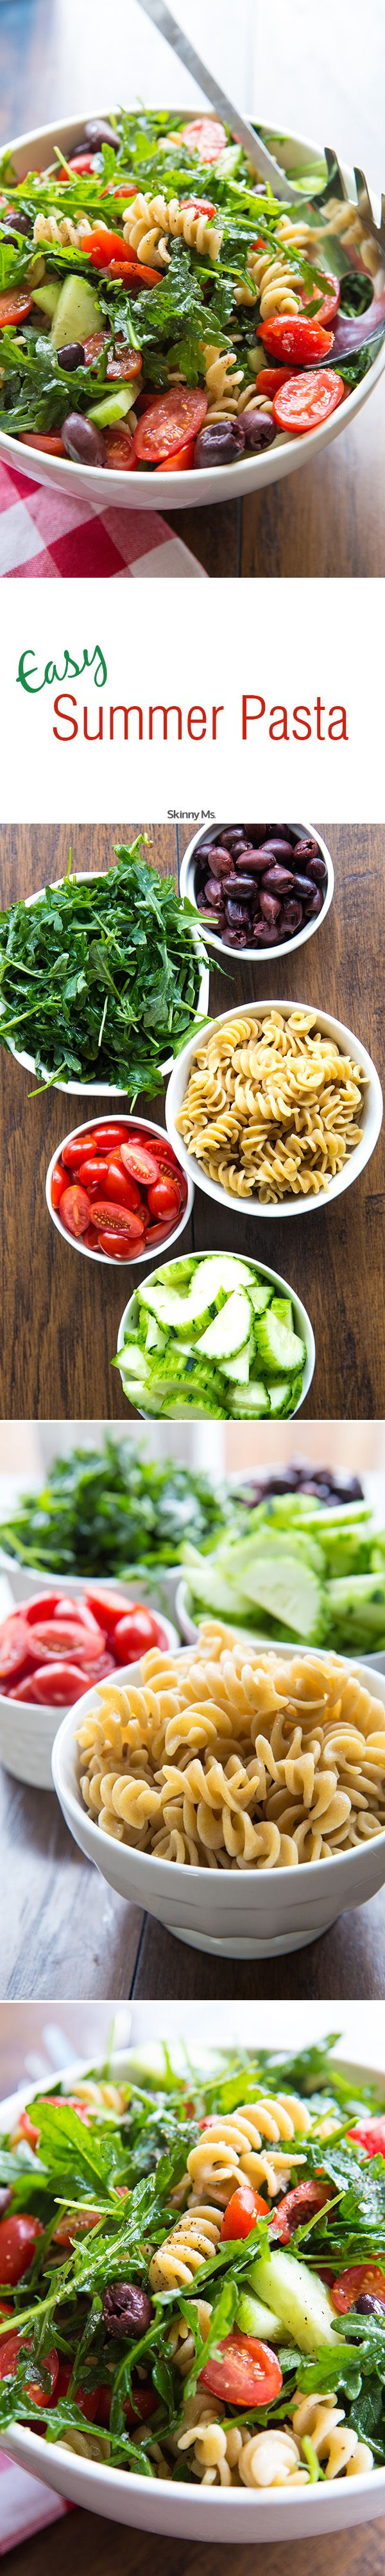 Easy Pasta Salad with Cucumbers & Tomatoes - delish! #easypastasalad #pastasalad #summerrecipes